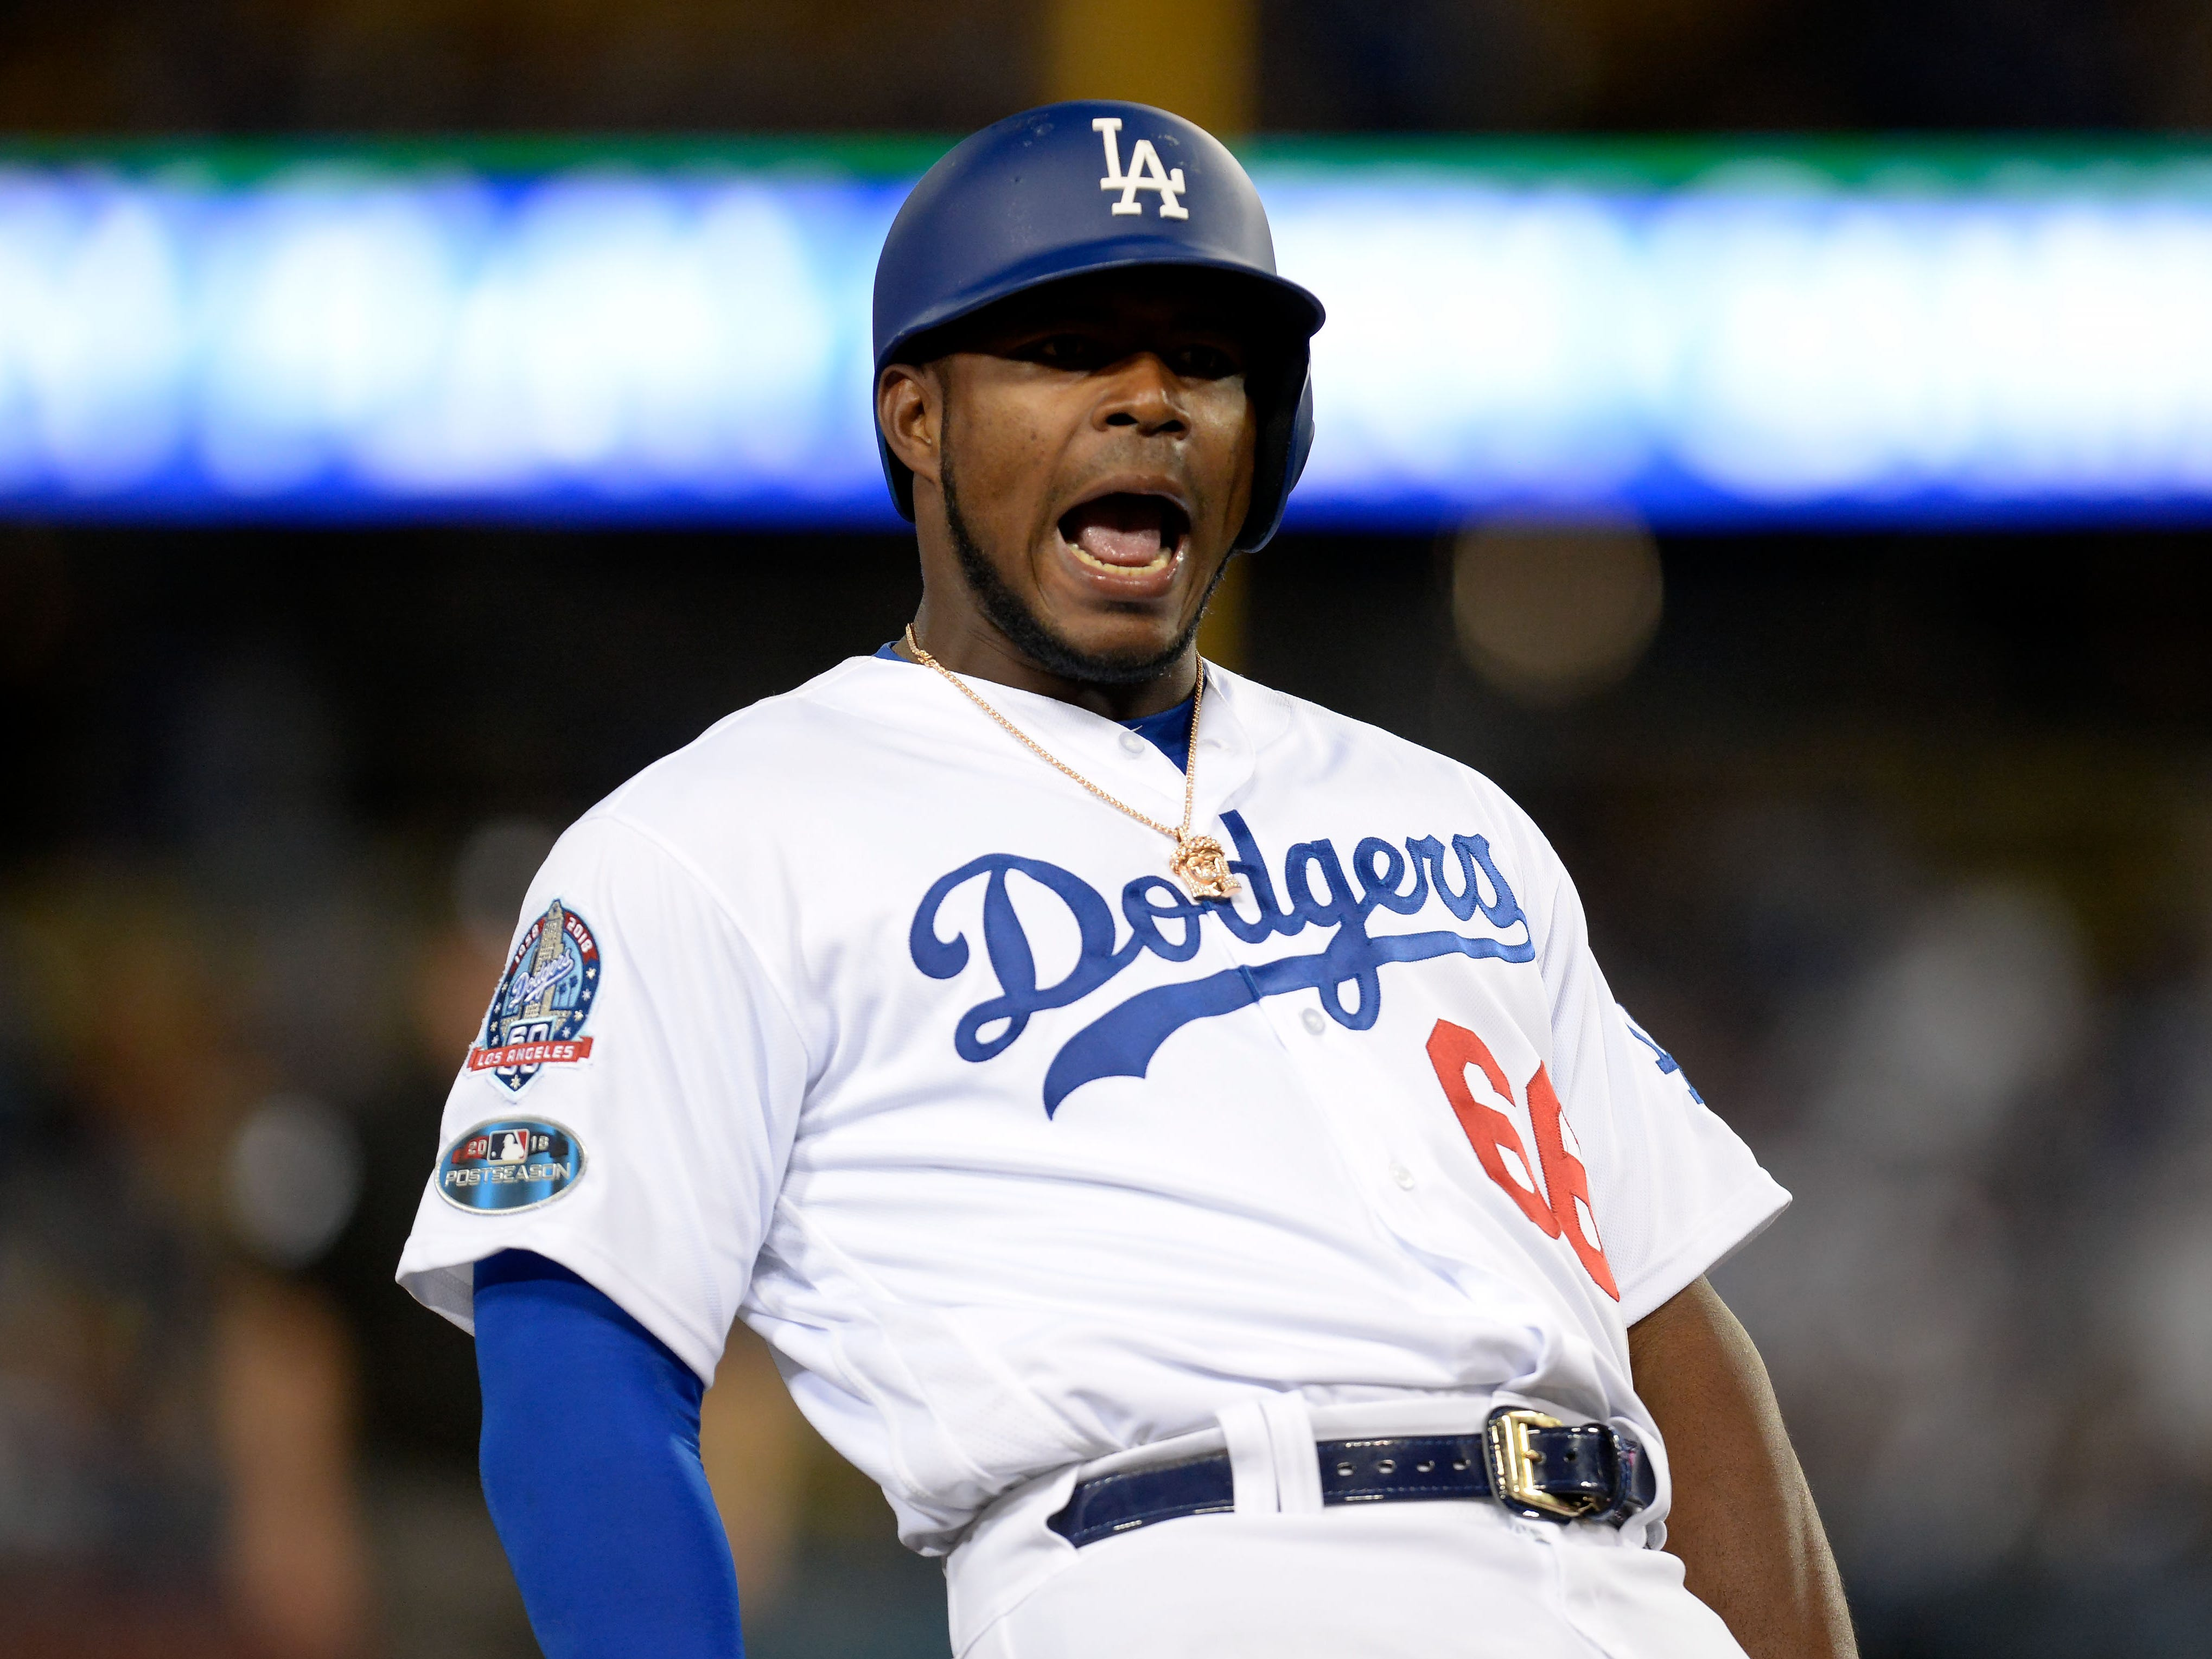 NLDS Game 1: Dodgers right fielder Yasiel Puig reacts after reaching third base on a throwing error in the eighth inning.